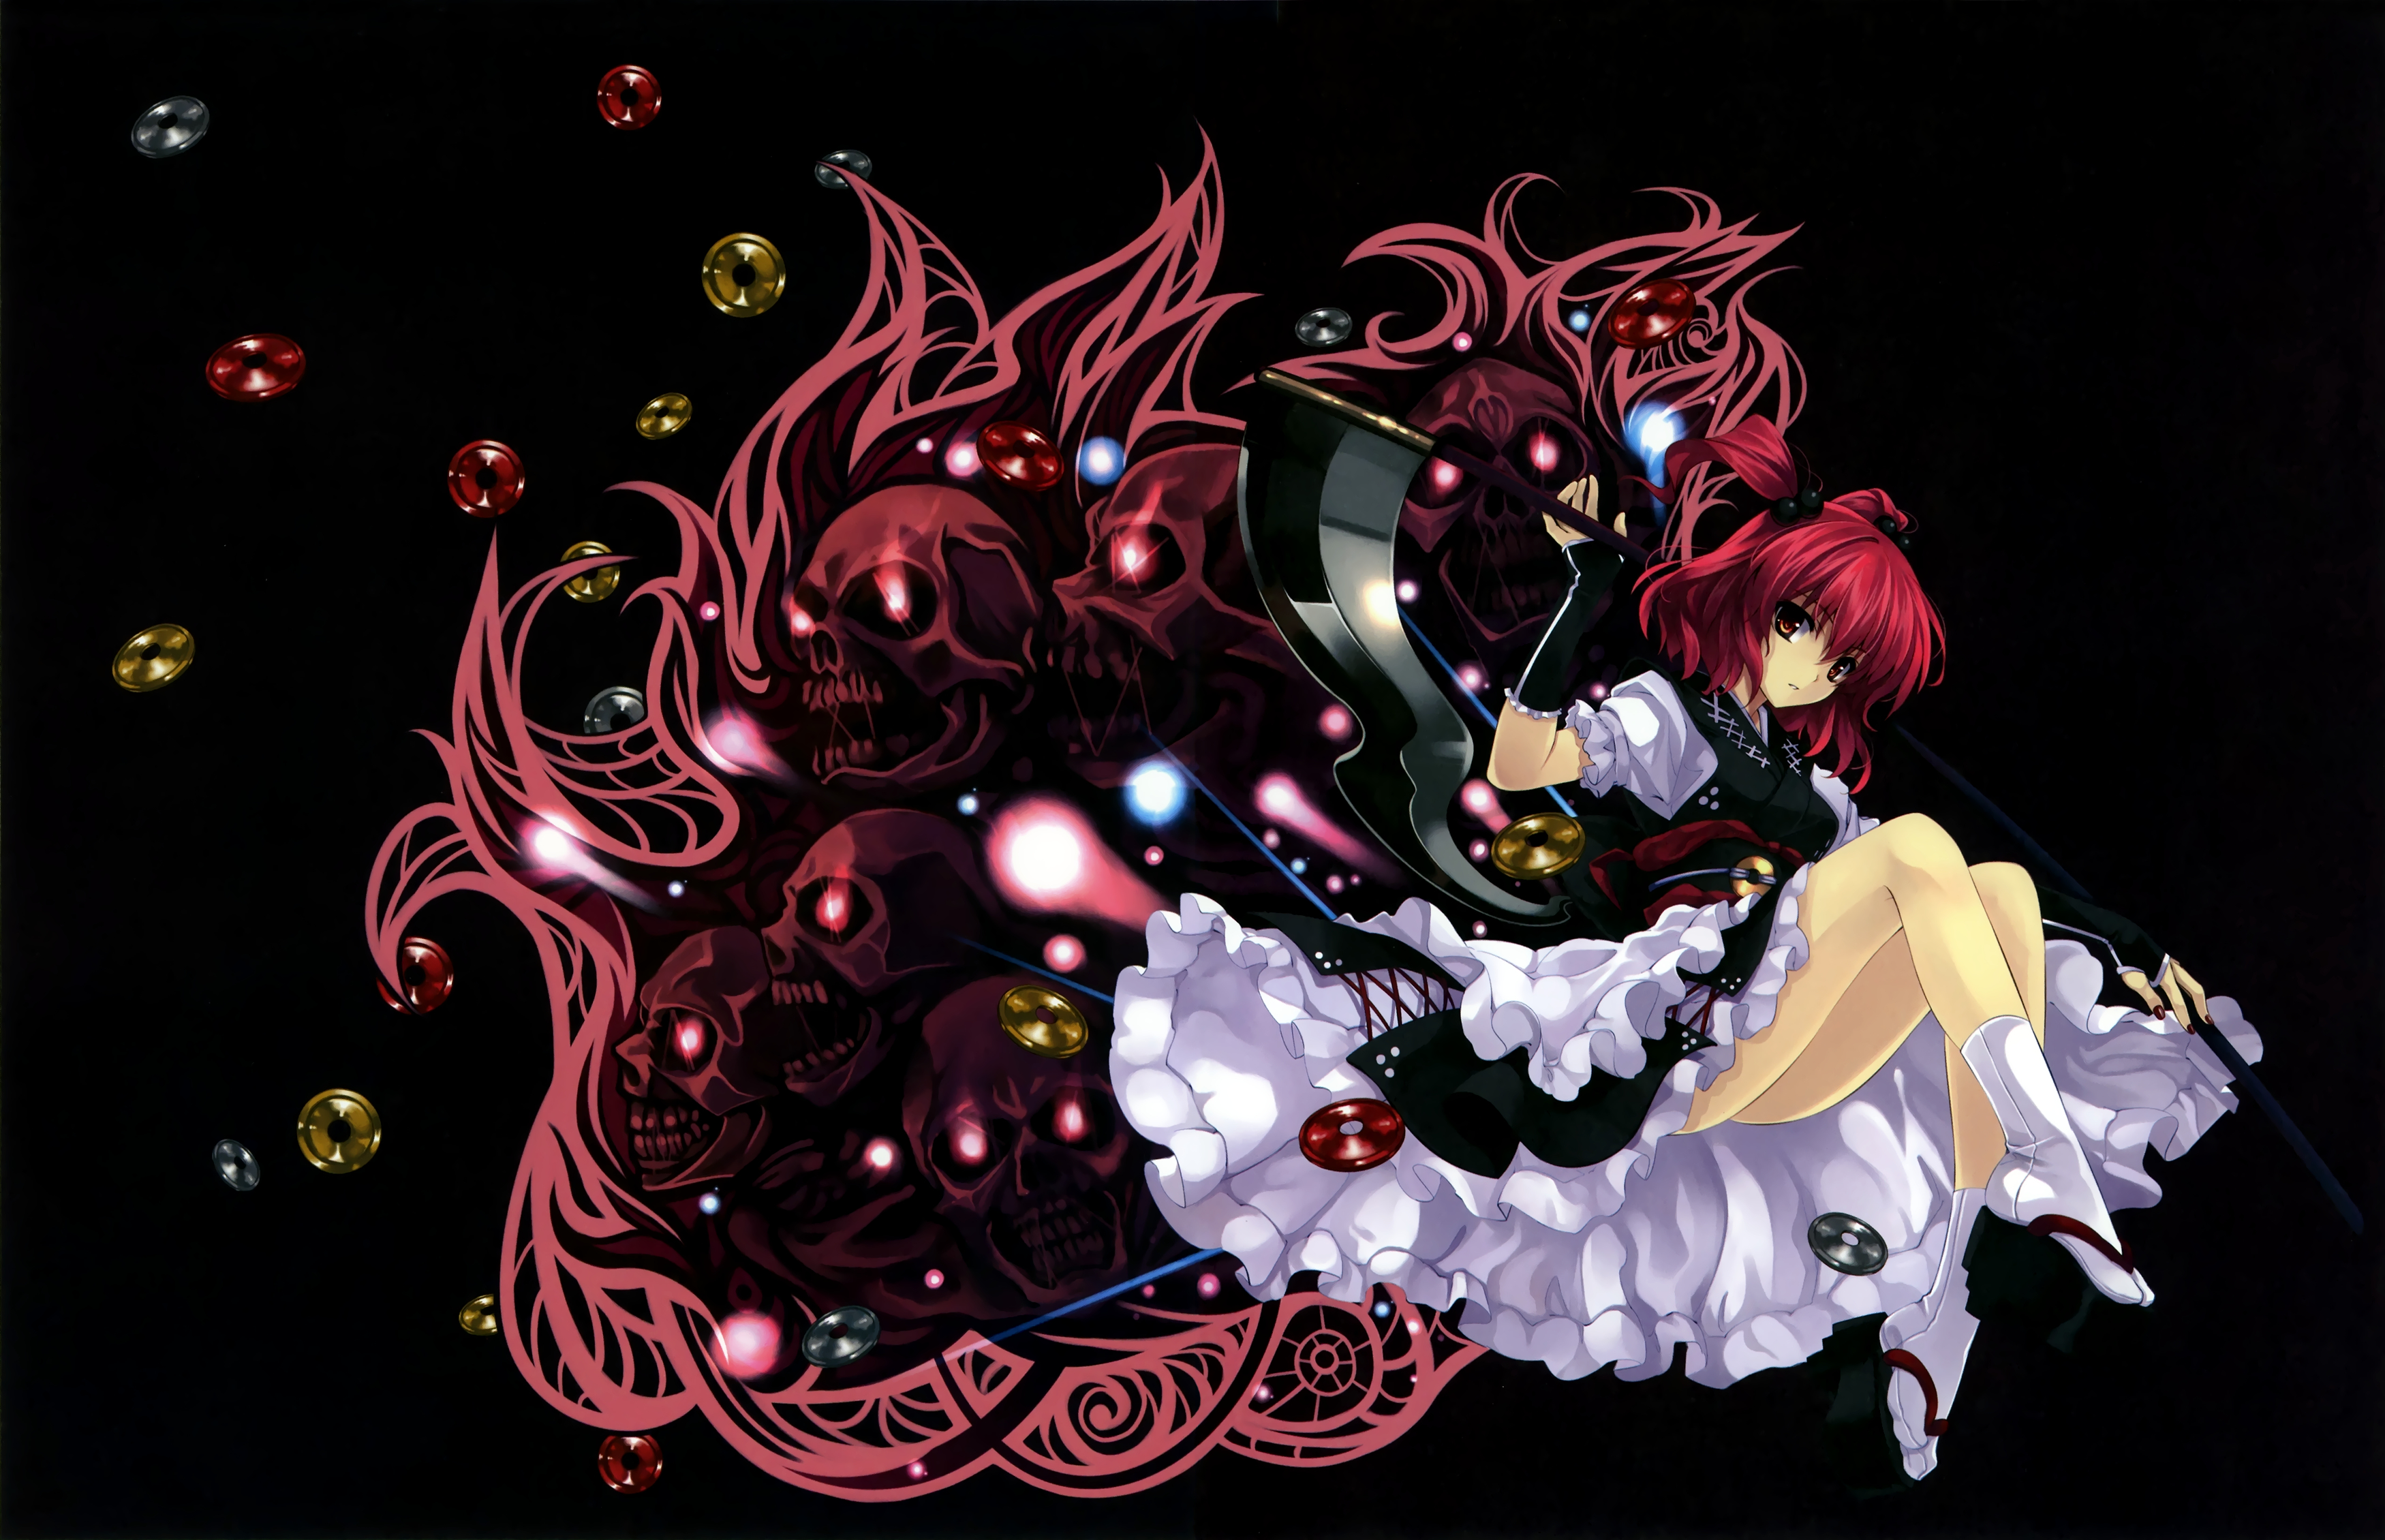 Anime Women touhou scythe HD Wallpaper